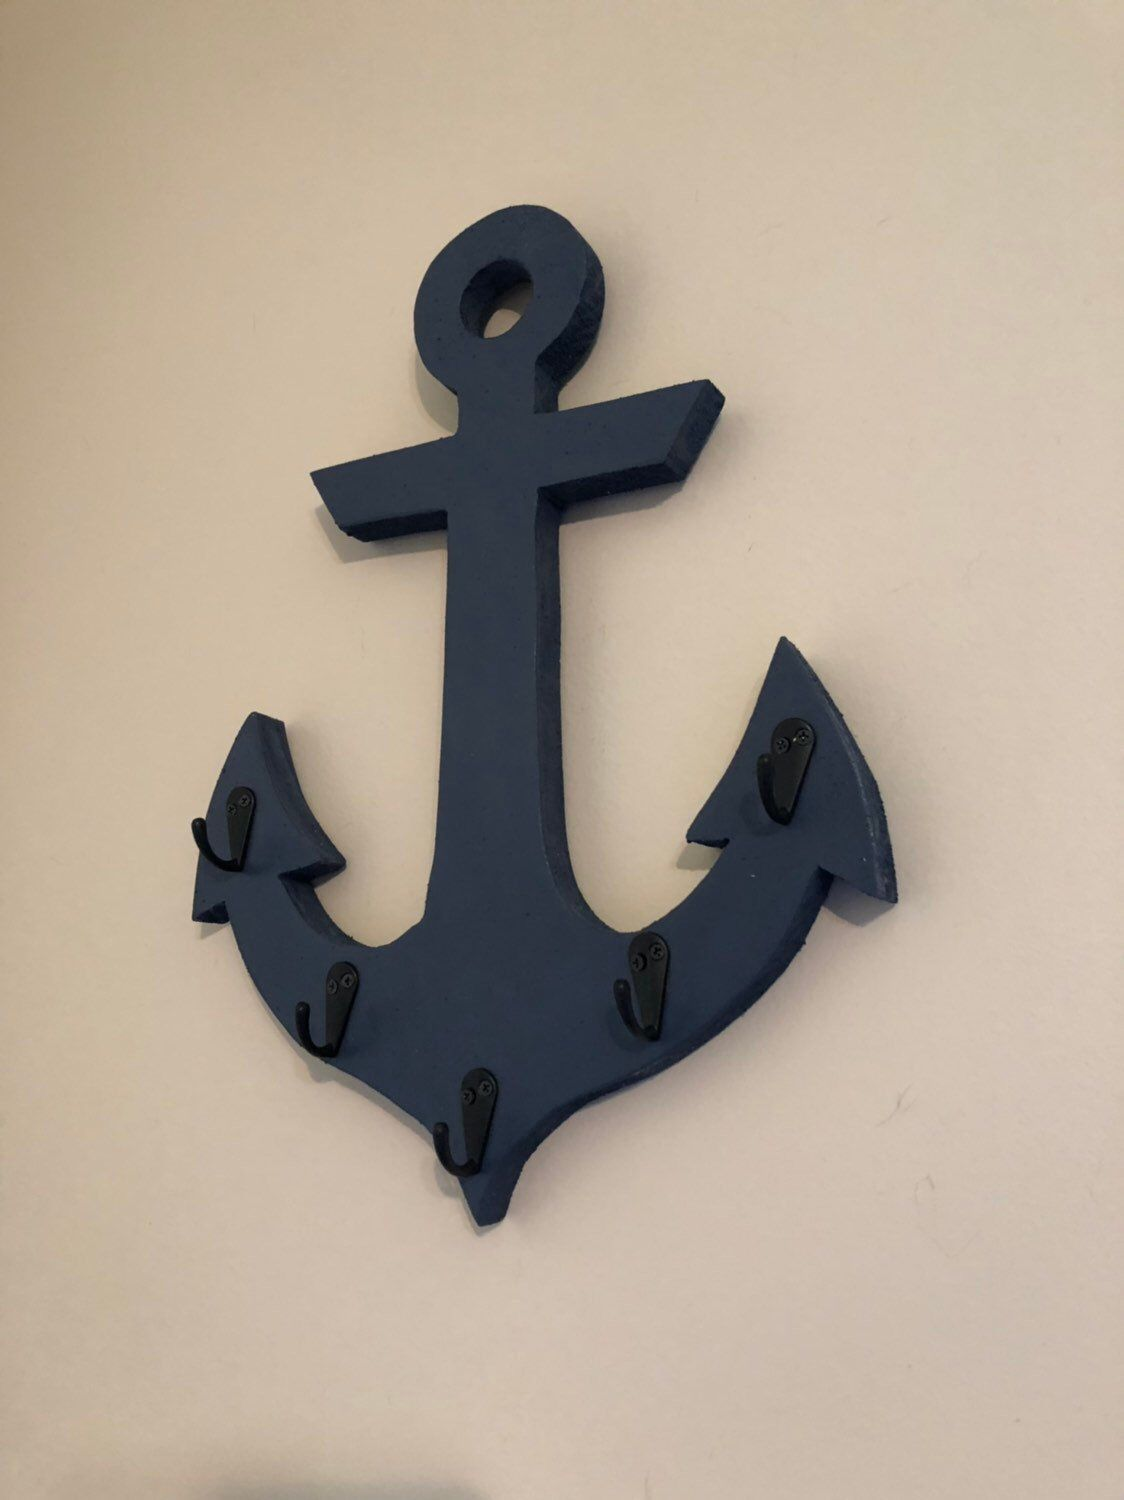 Wooden Anchor With Hooks Wooden Anchor Anchor Decor Nautical Nursery Nautical Decor Wood Anchor Anchor Wall Art Anchor Nautical Decor Nautical Theme Decor Wood Anchor Anchor Wall Art